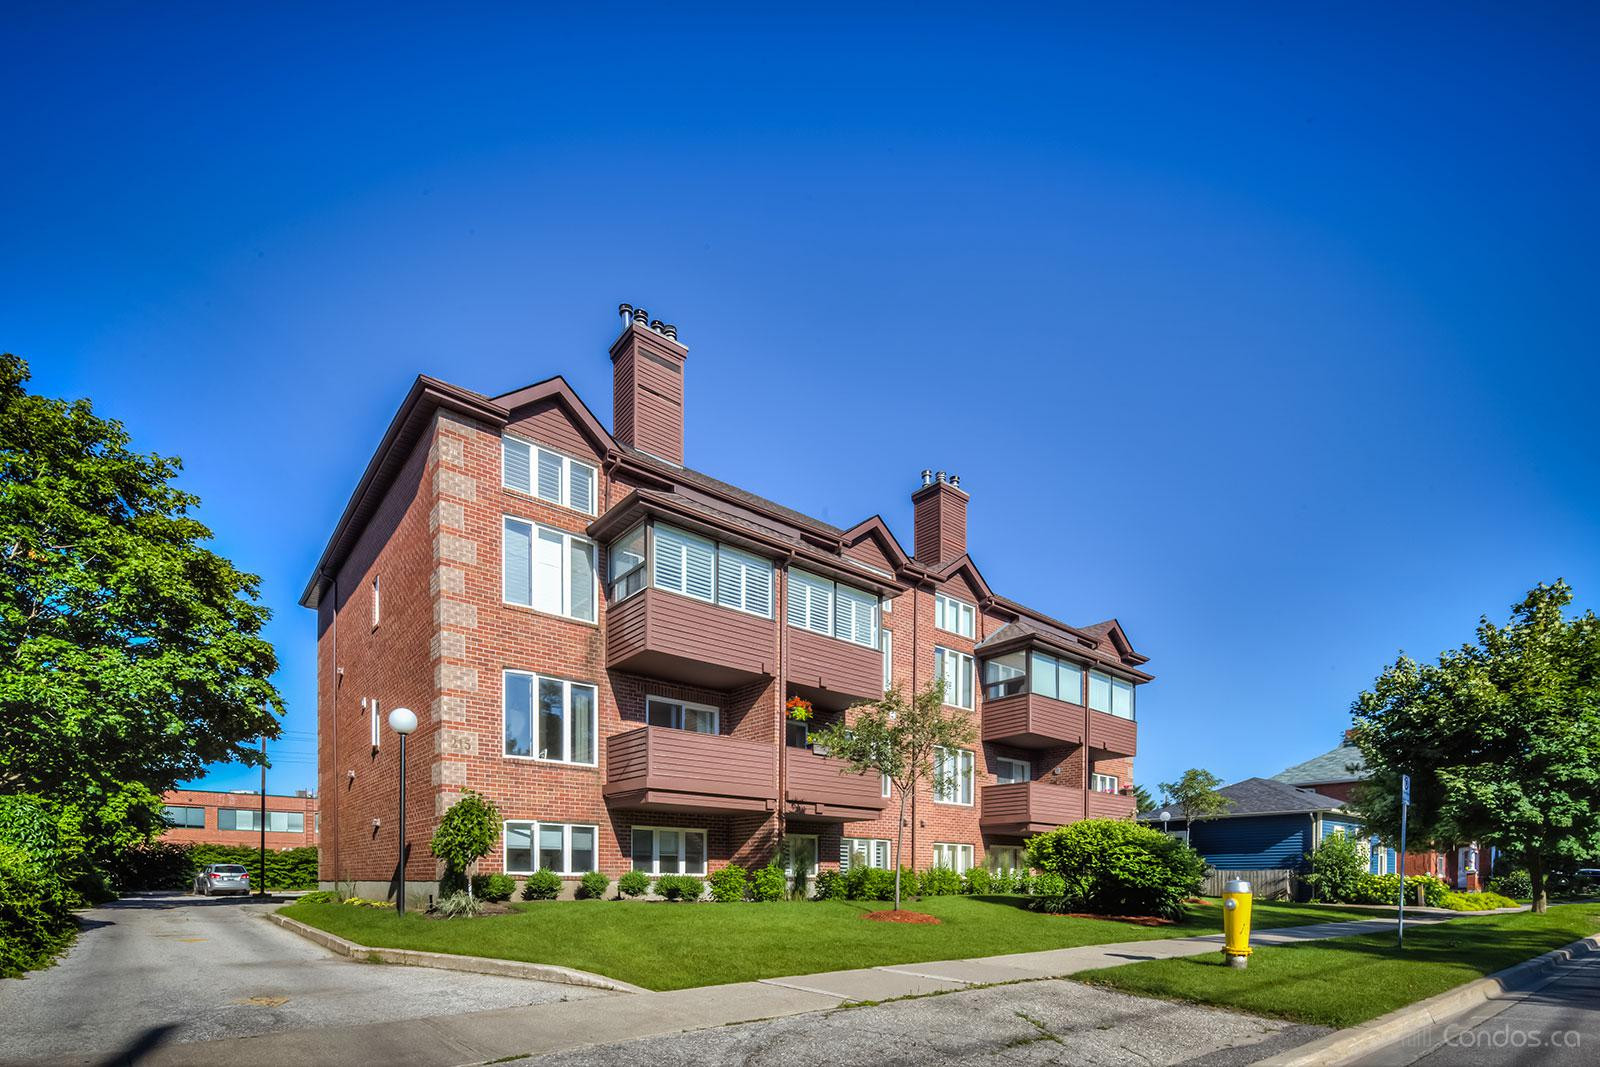 215 Pine Condos at 215 Pine St, Collingwood 1